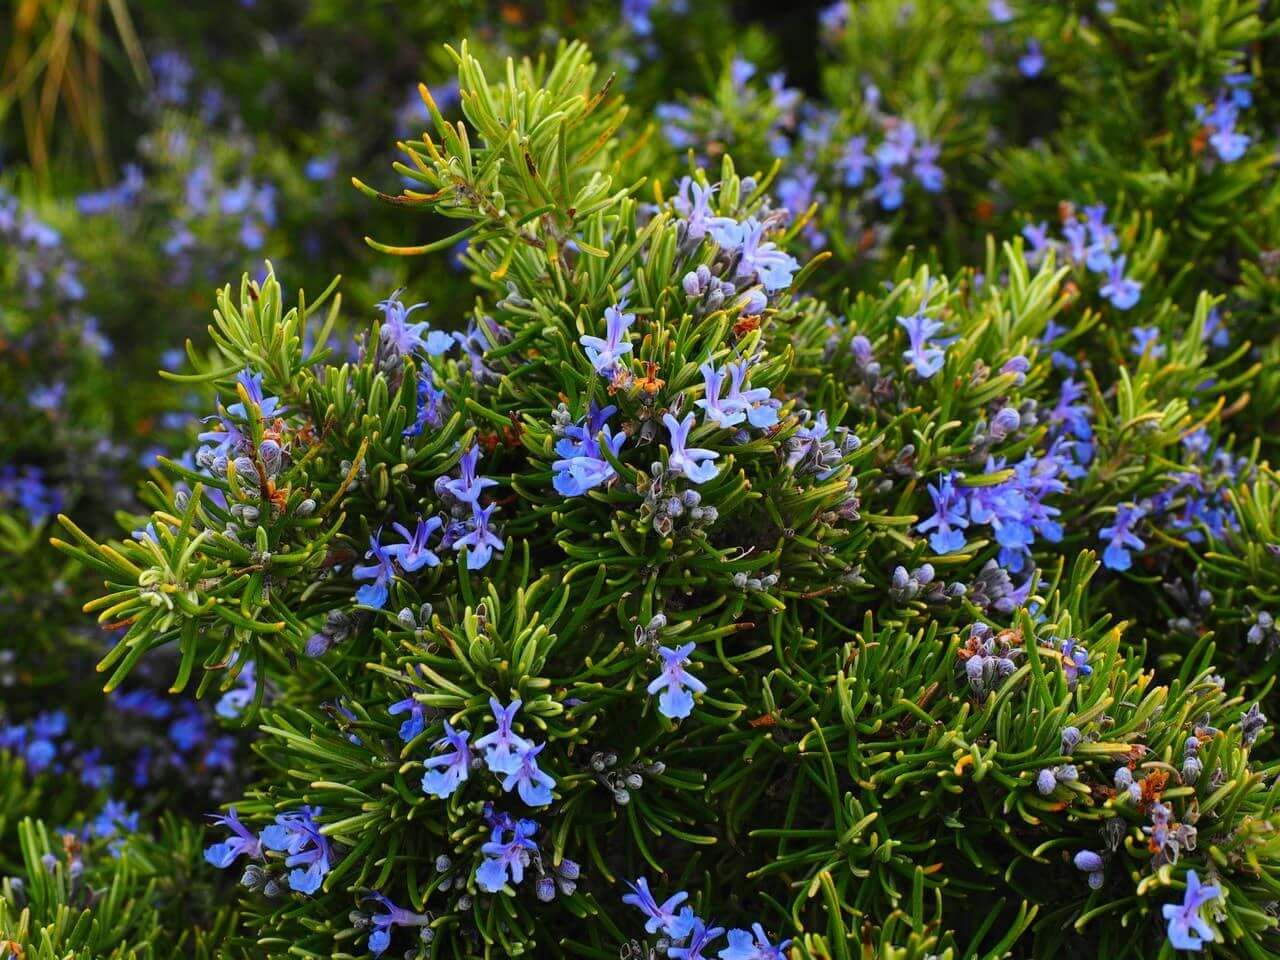 close-up on plant with blue flowers